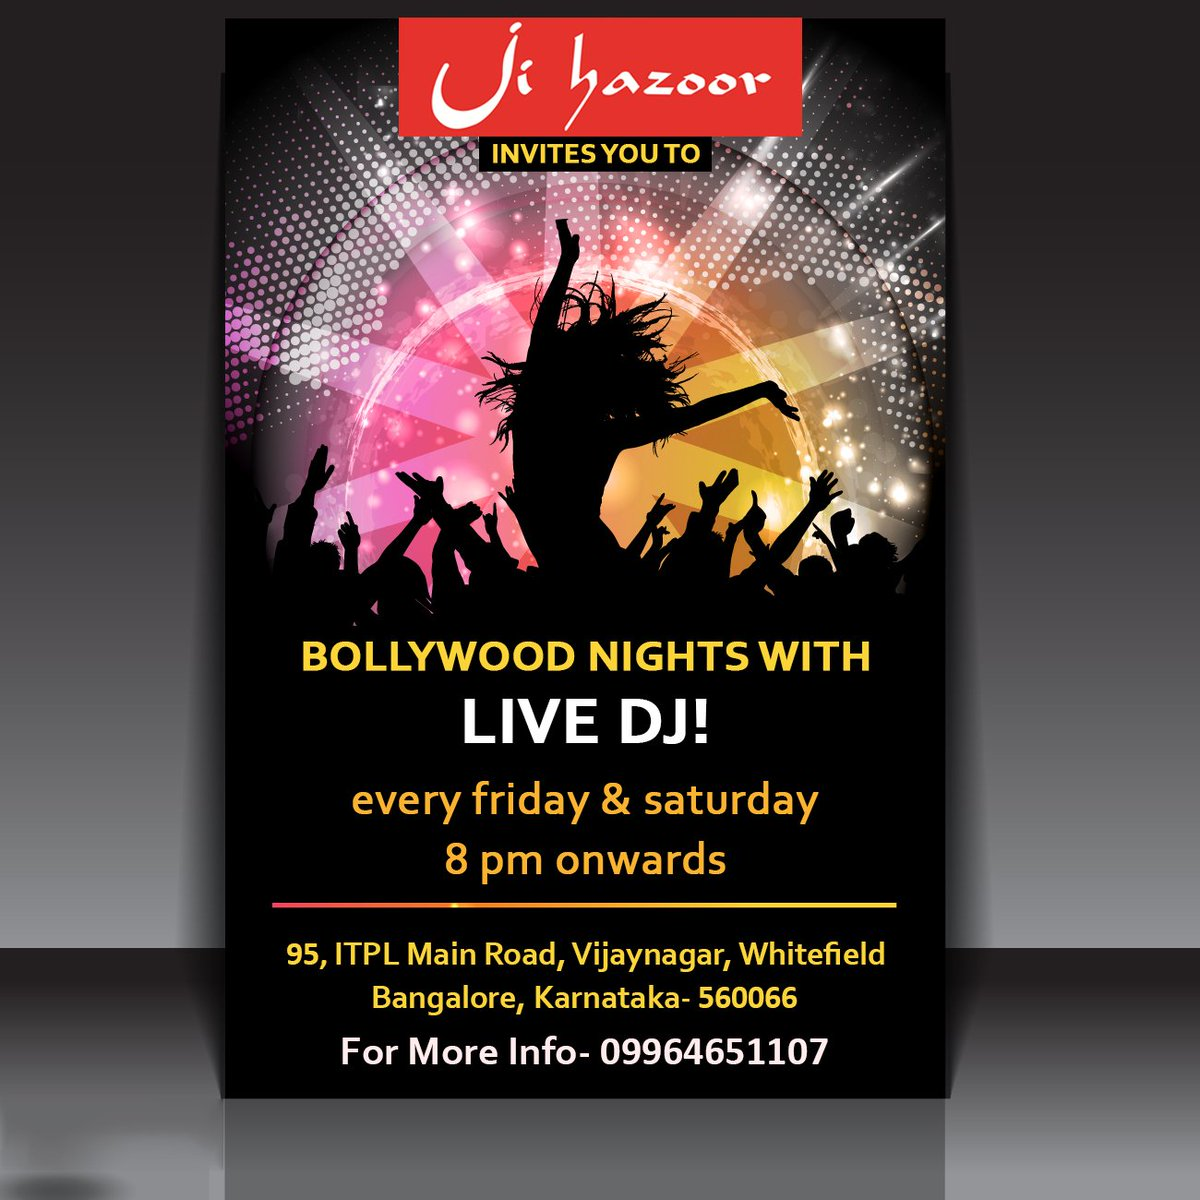 Are You Ready For The Party? It&#39;s Here @ Ji Hazoor! Call 09964651107 Now For Bookings &amp; Queries! #JiHazoor #Dining #Restaurant #Bengaluru<br>http://pic.twitter.com/gEa2wtXN52